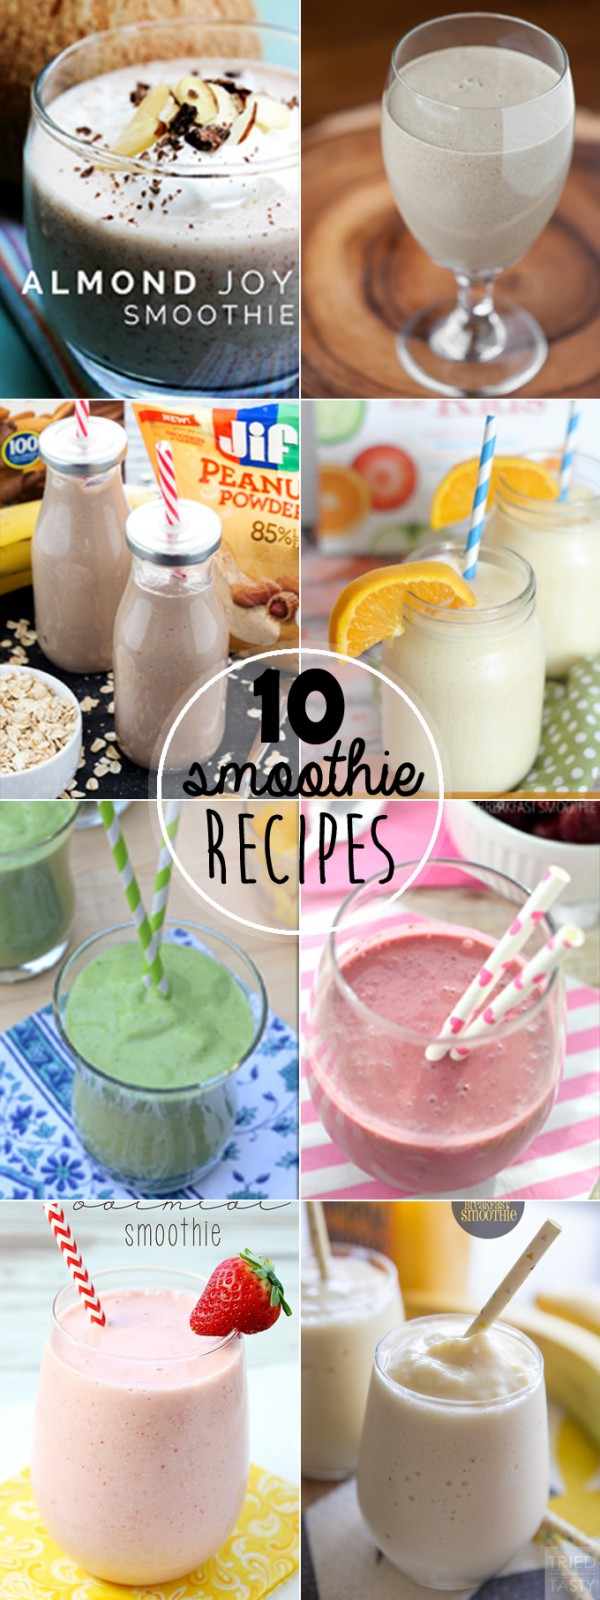 10 Smoothie Recipes